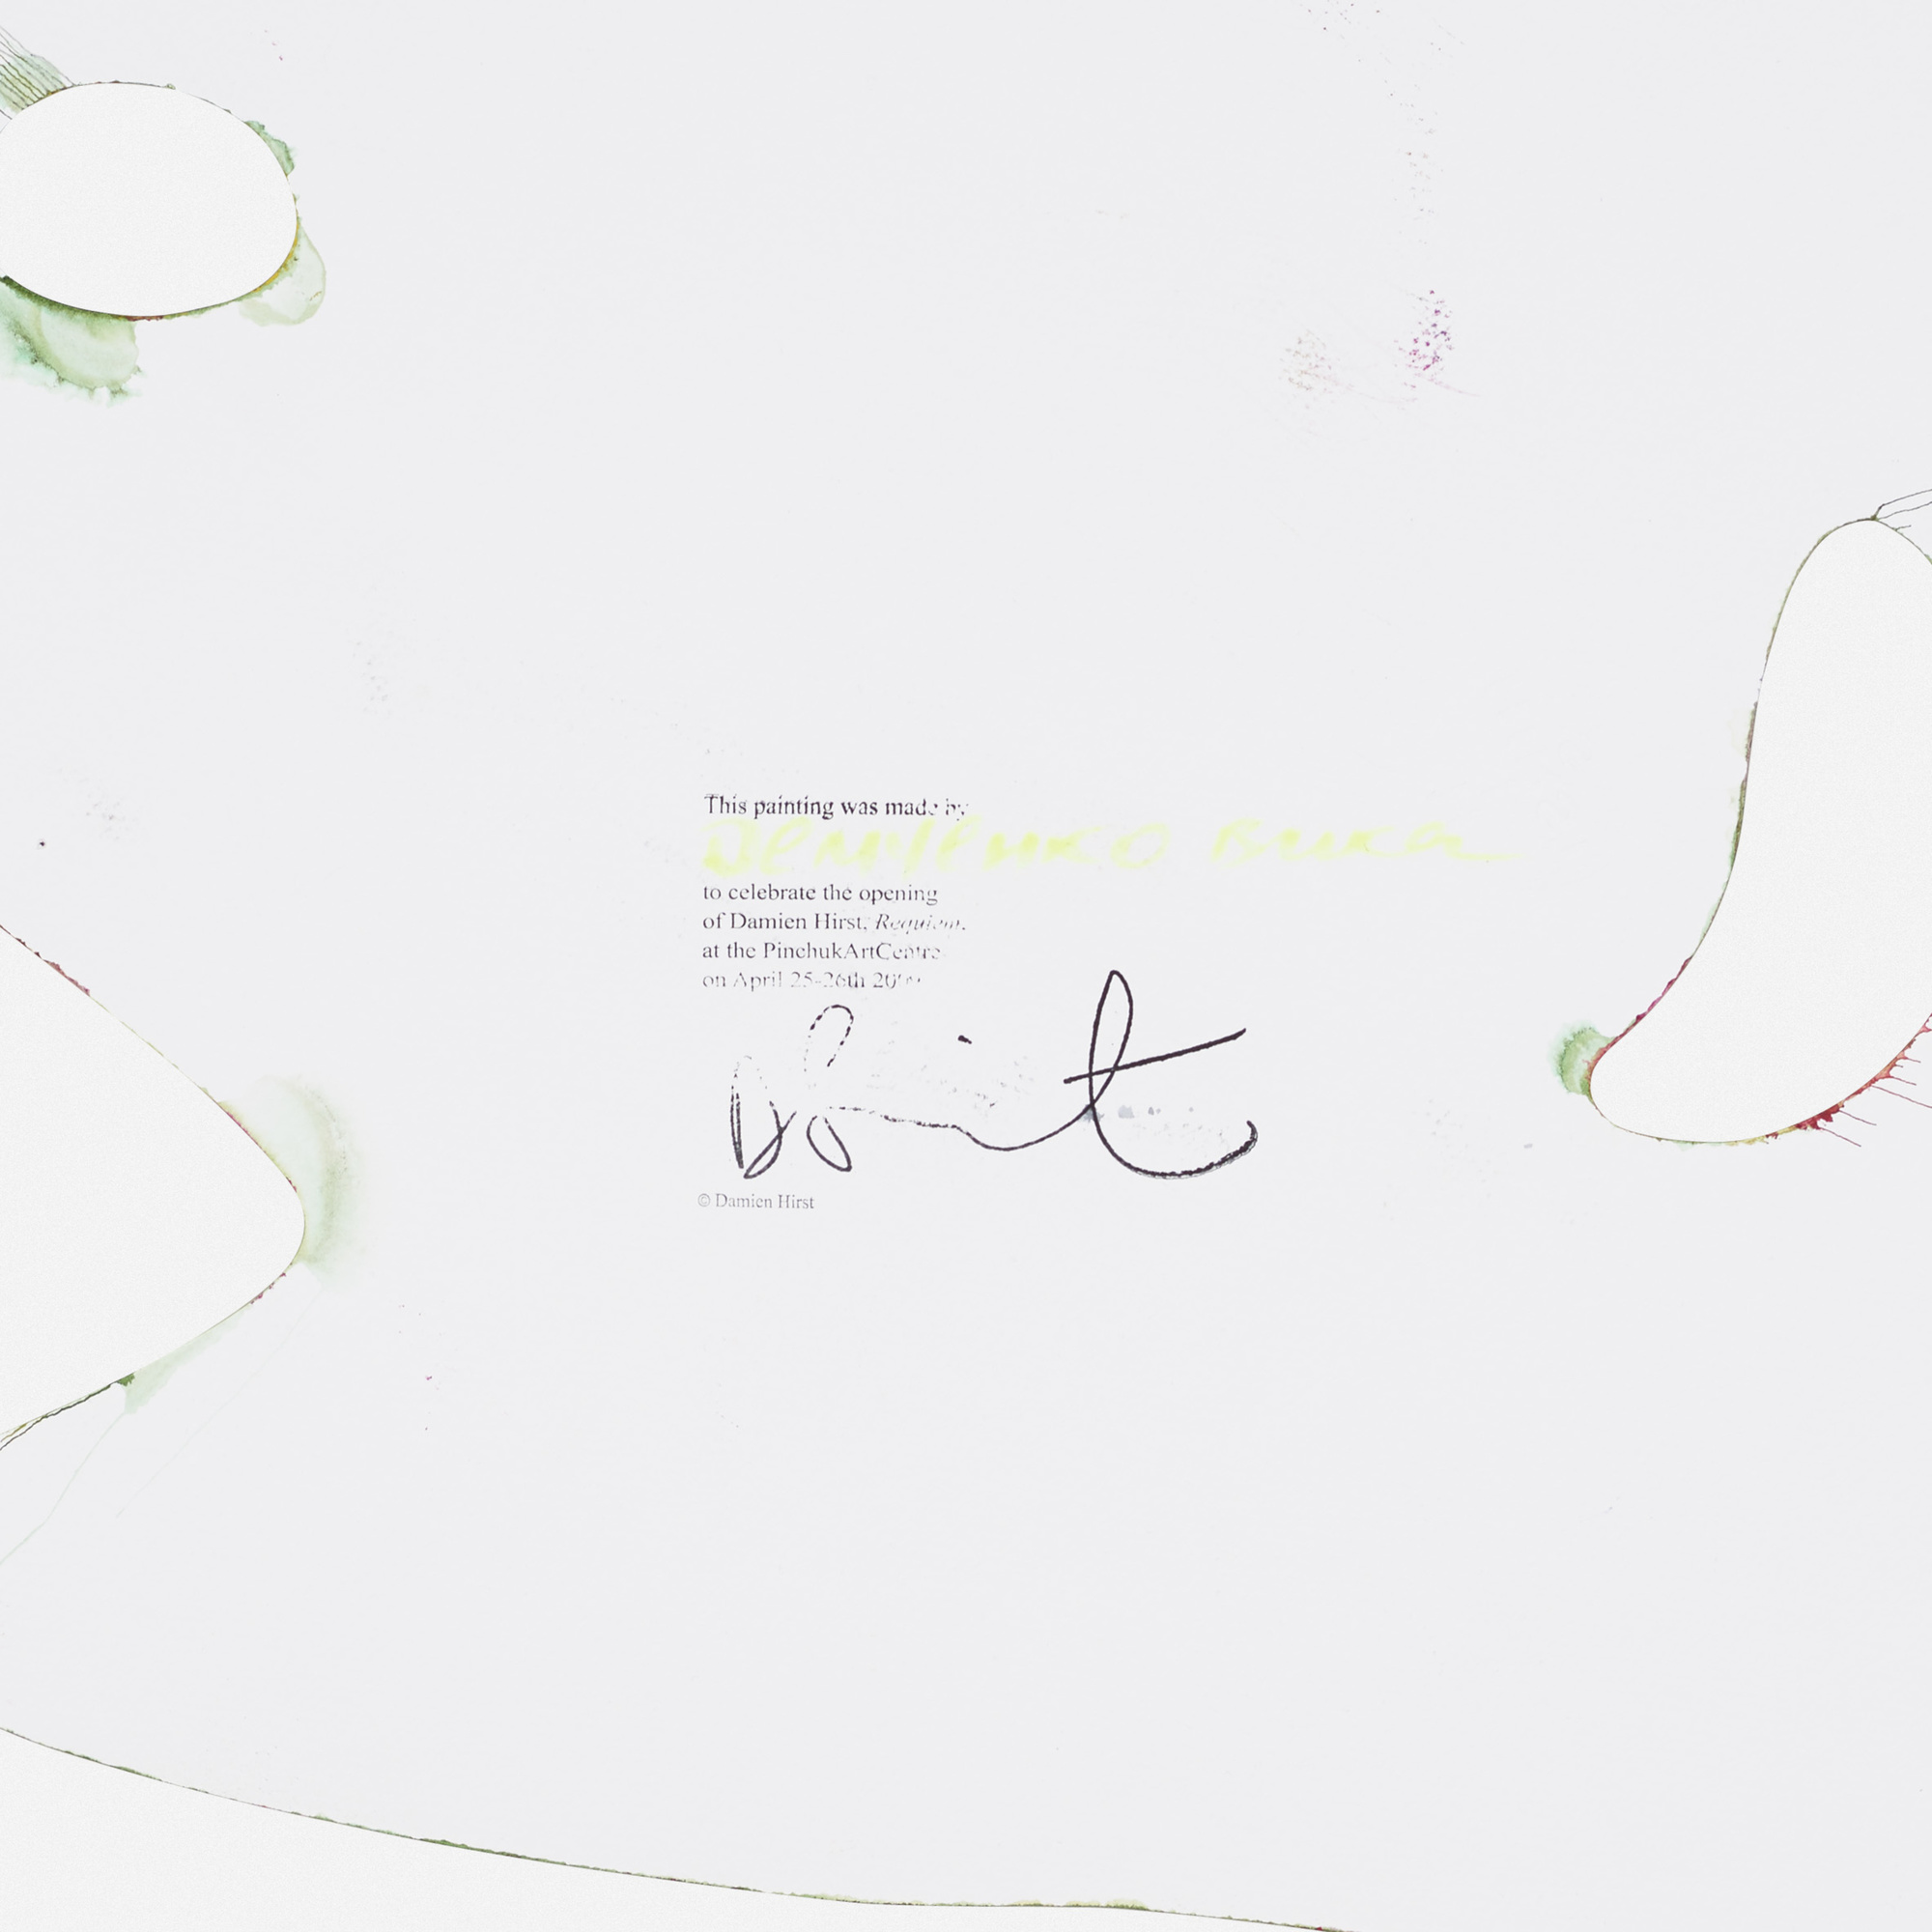 202 After Damien Hirst Shark Spin Painting Art Design 11 April 2019 Auctions Wright Auctions Of Art And Design